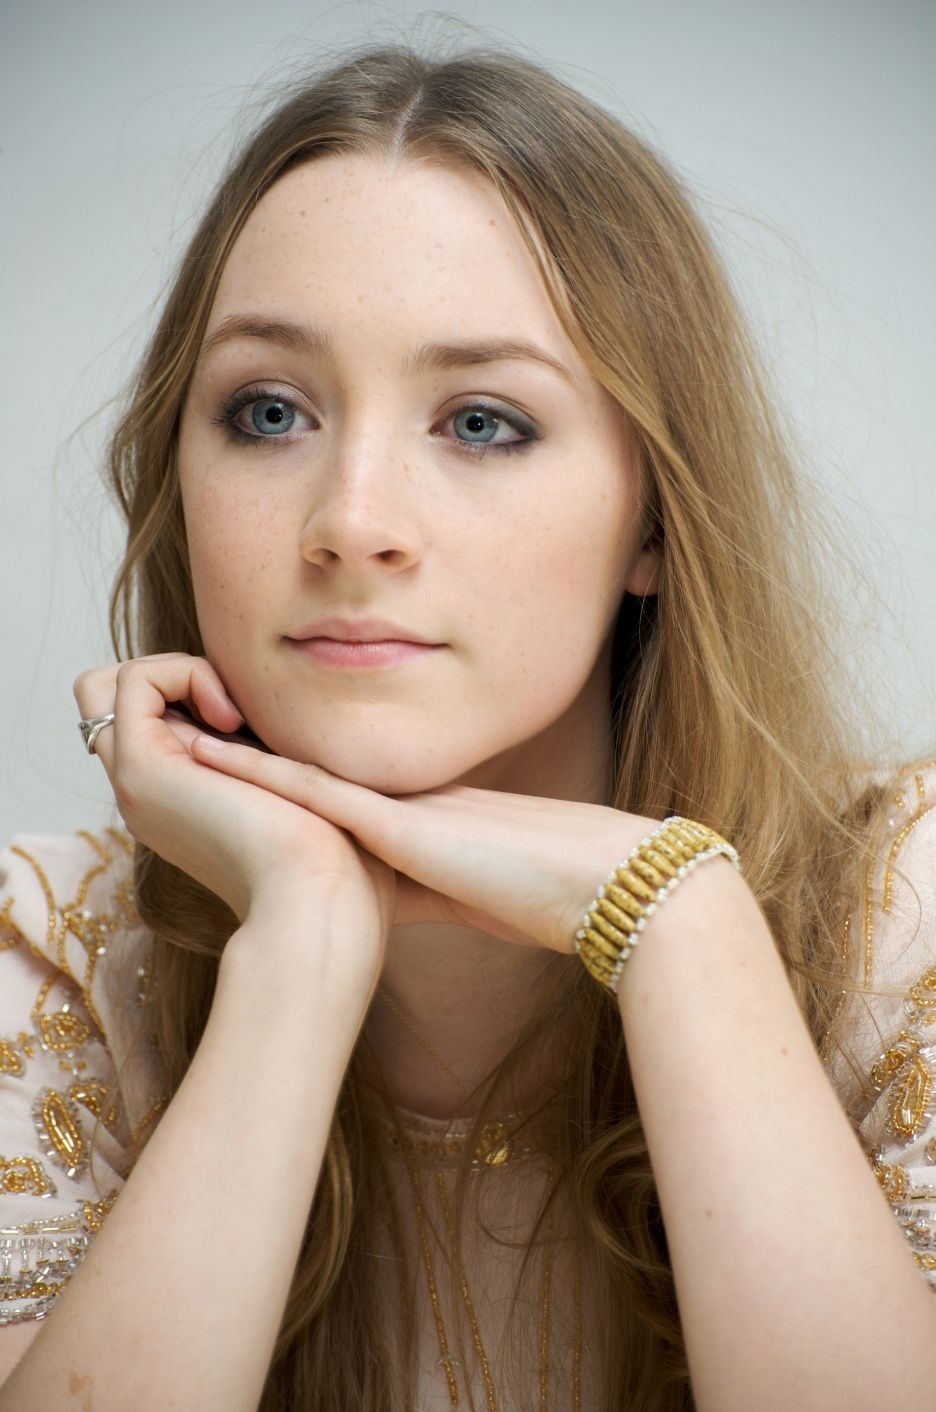 Saoirse Ronan With Images Celebrities The Lovely Bones Actresses